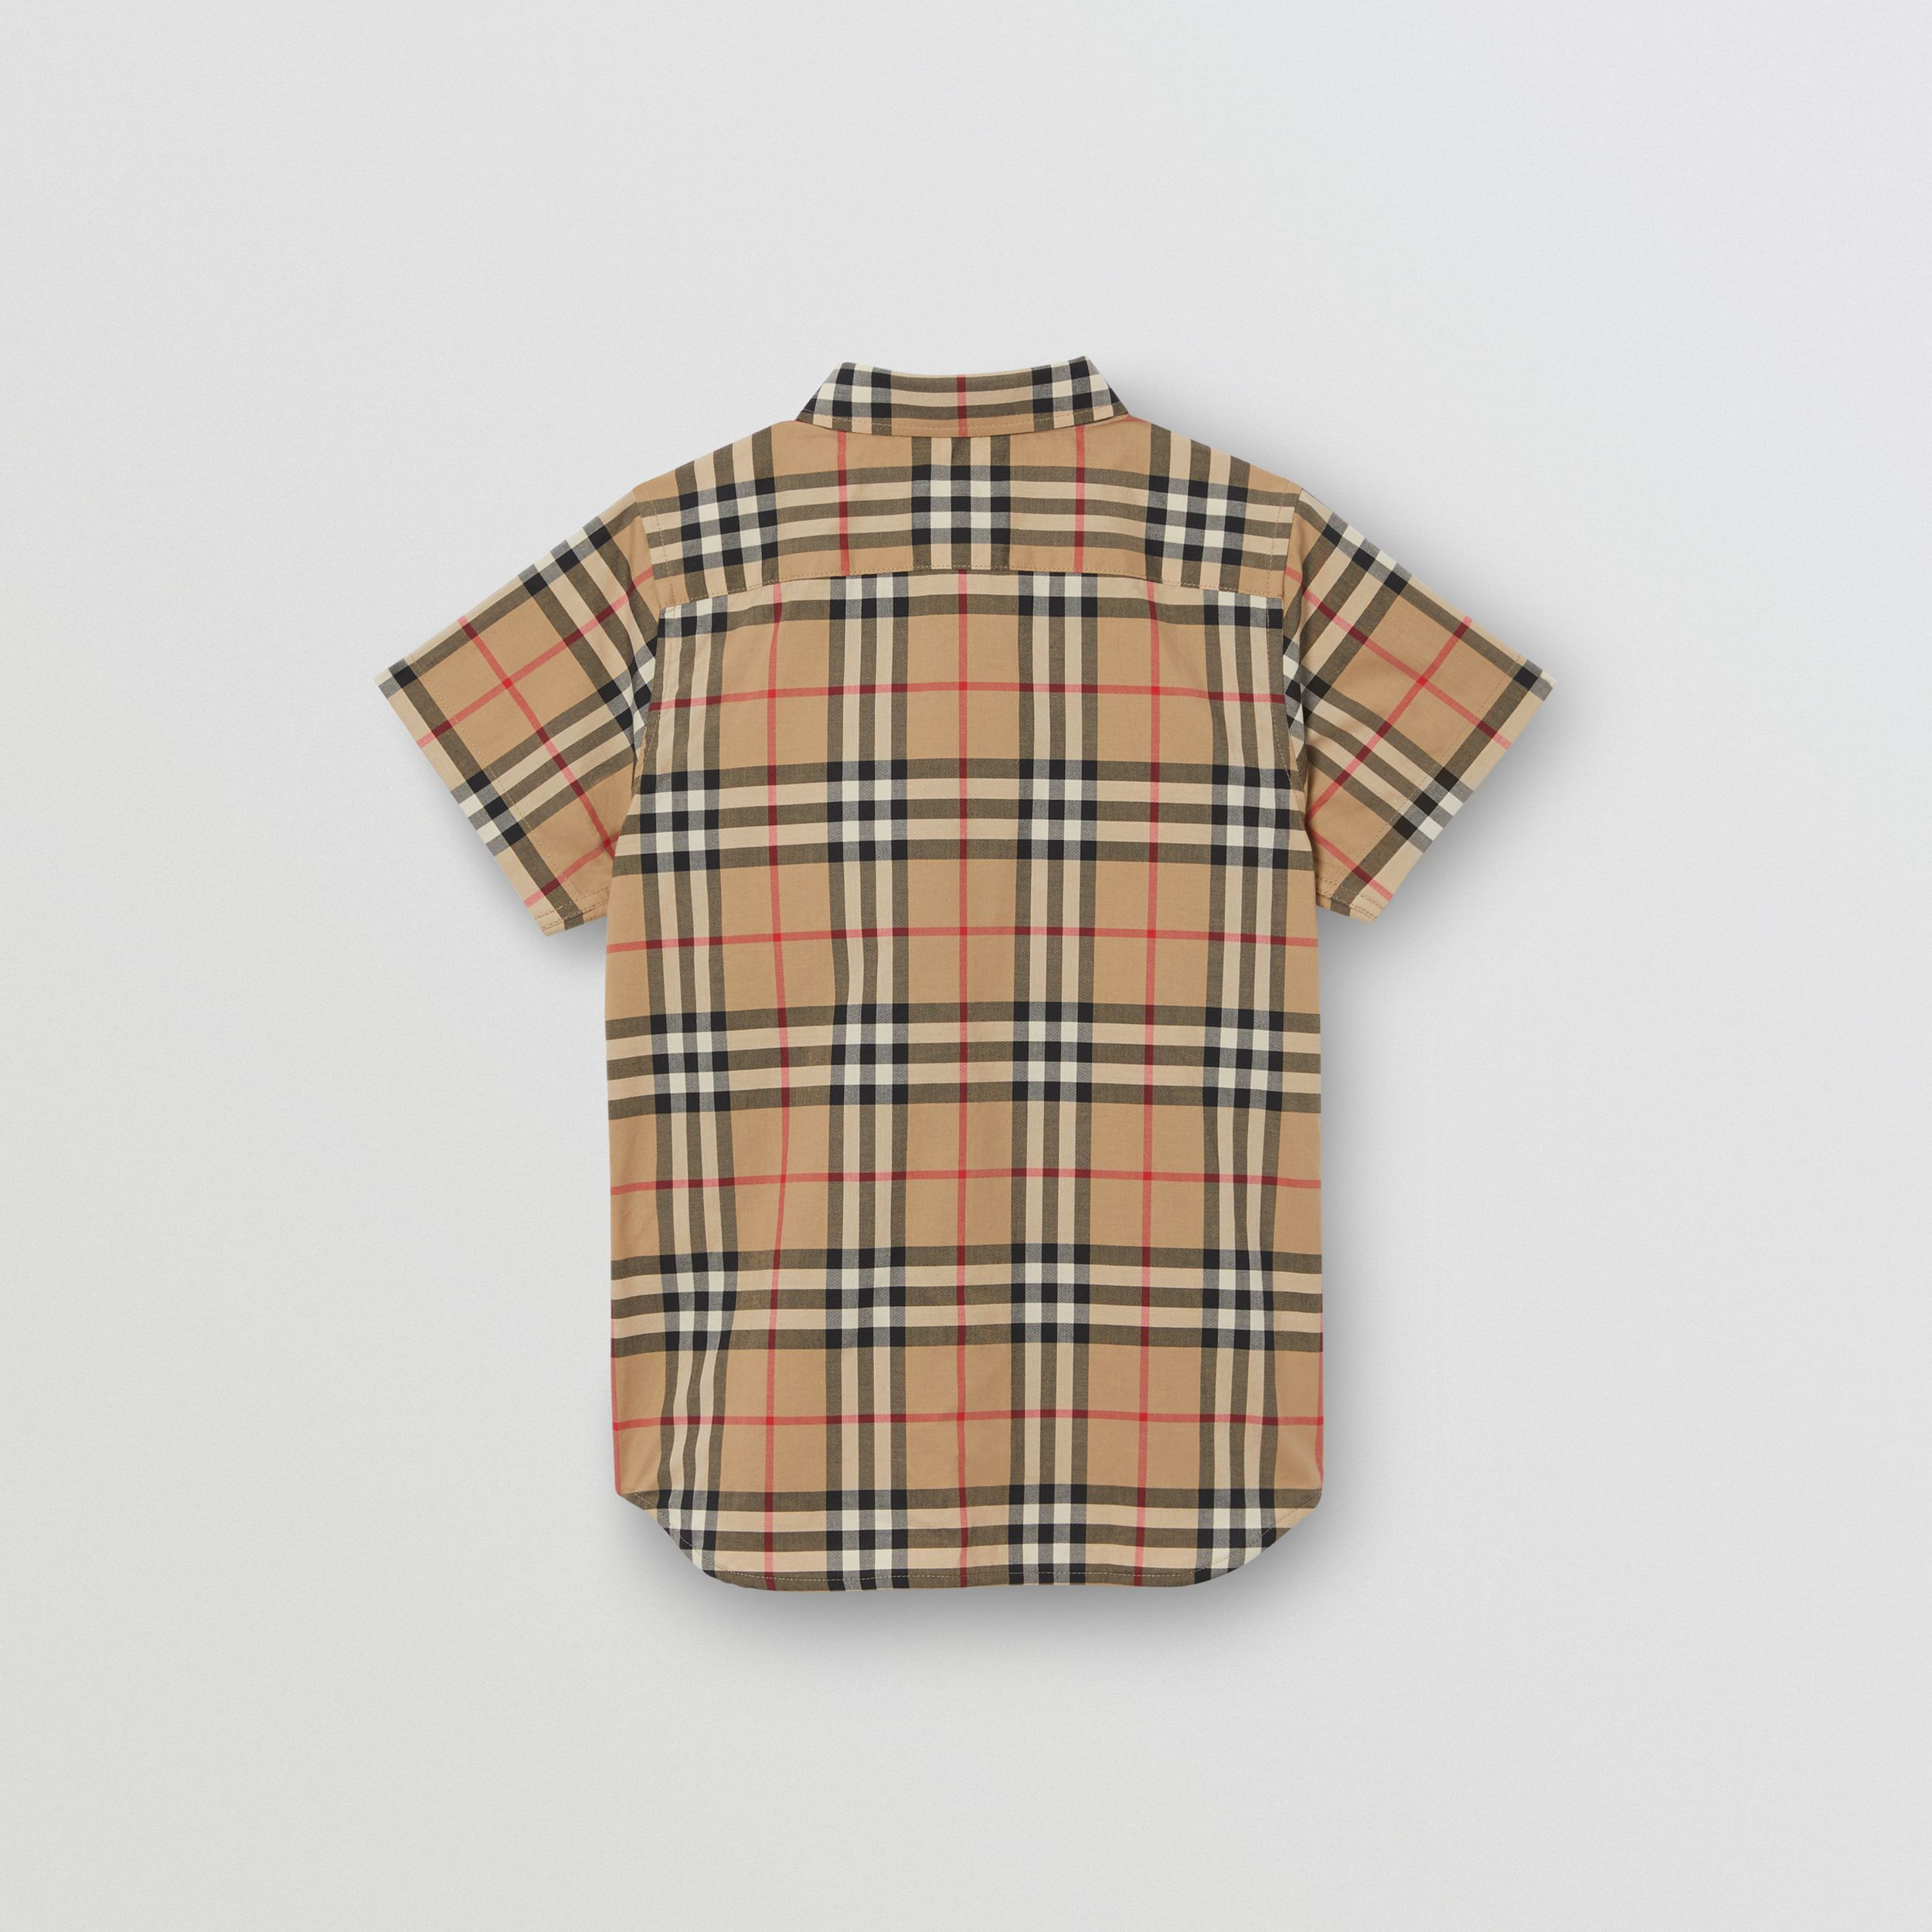 Short-sleeve Vintage Check Cotton Shirt in Archive Beige | Burberry - 4